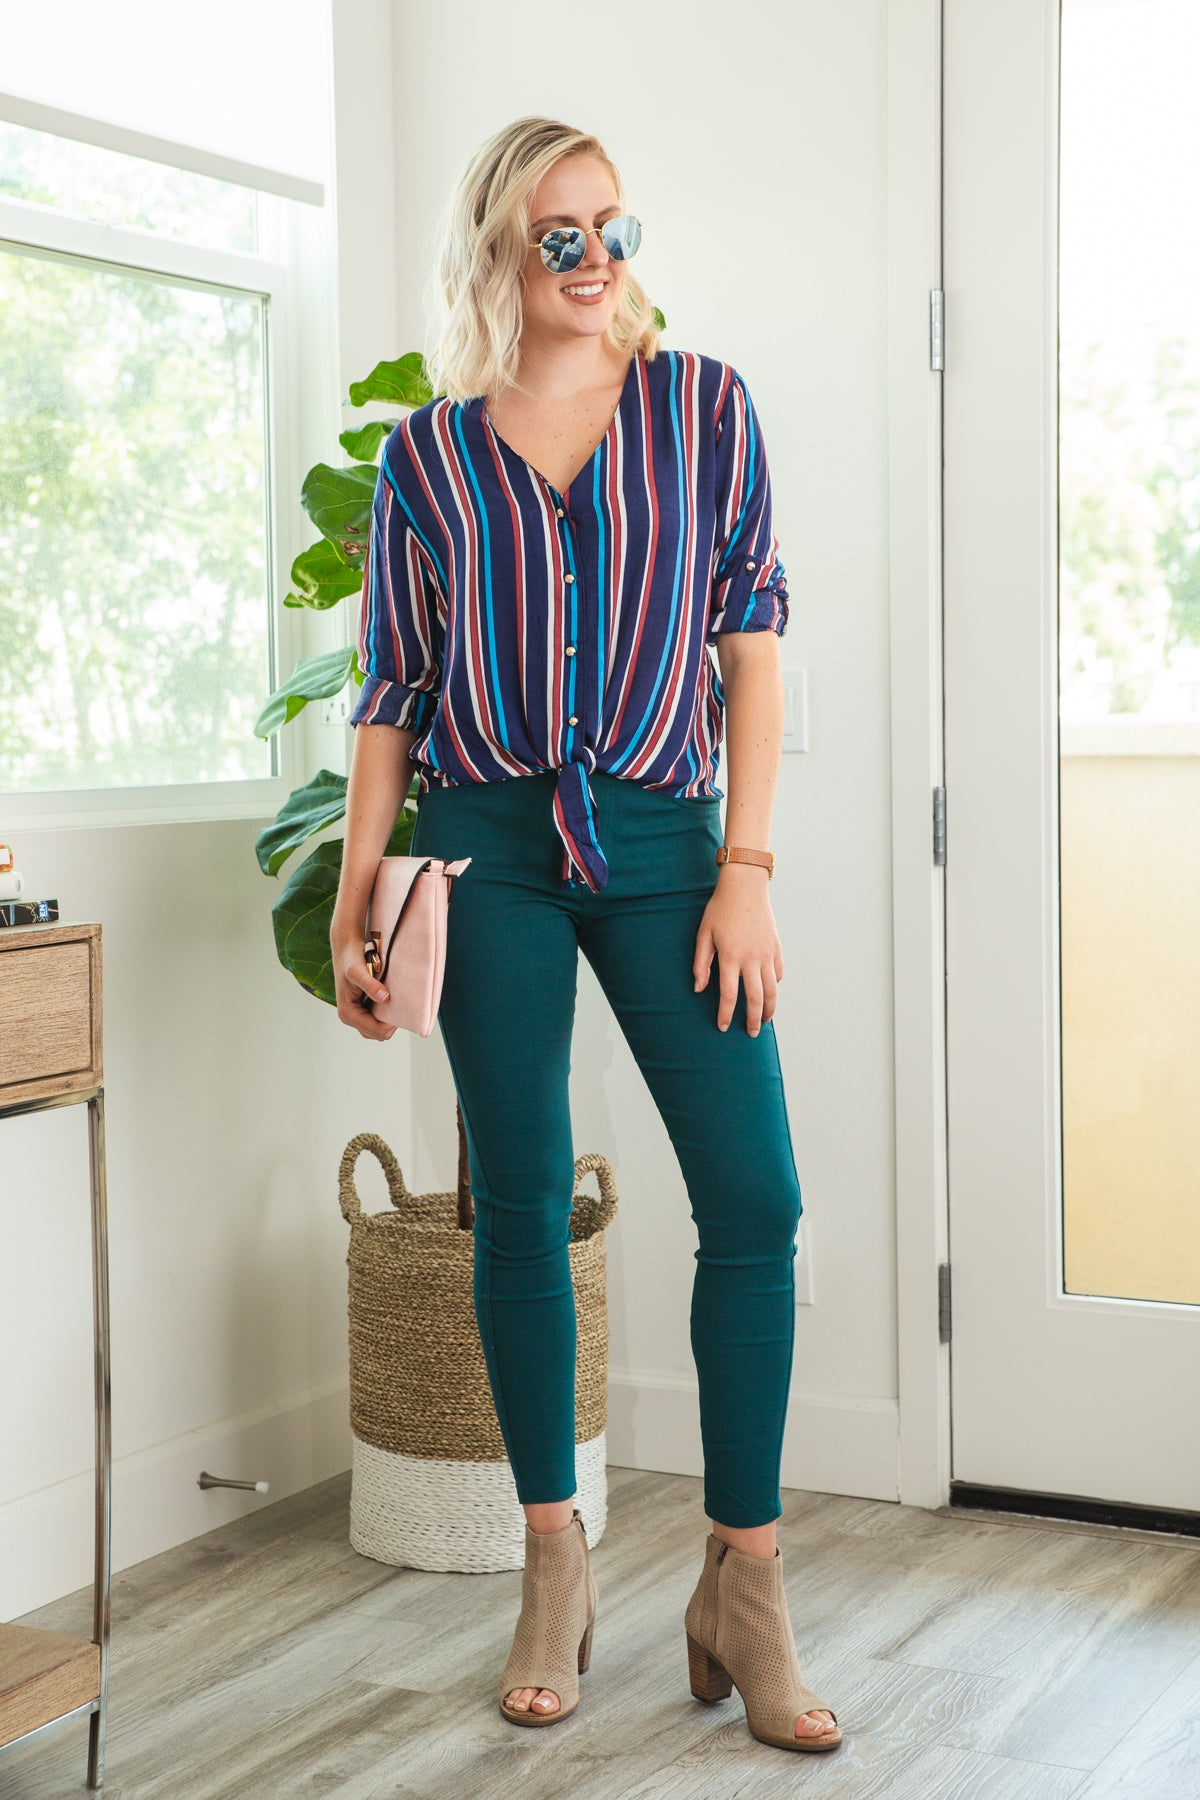 Follow the Stripes Blouse in Navy